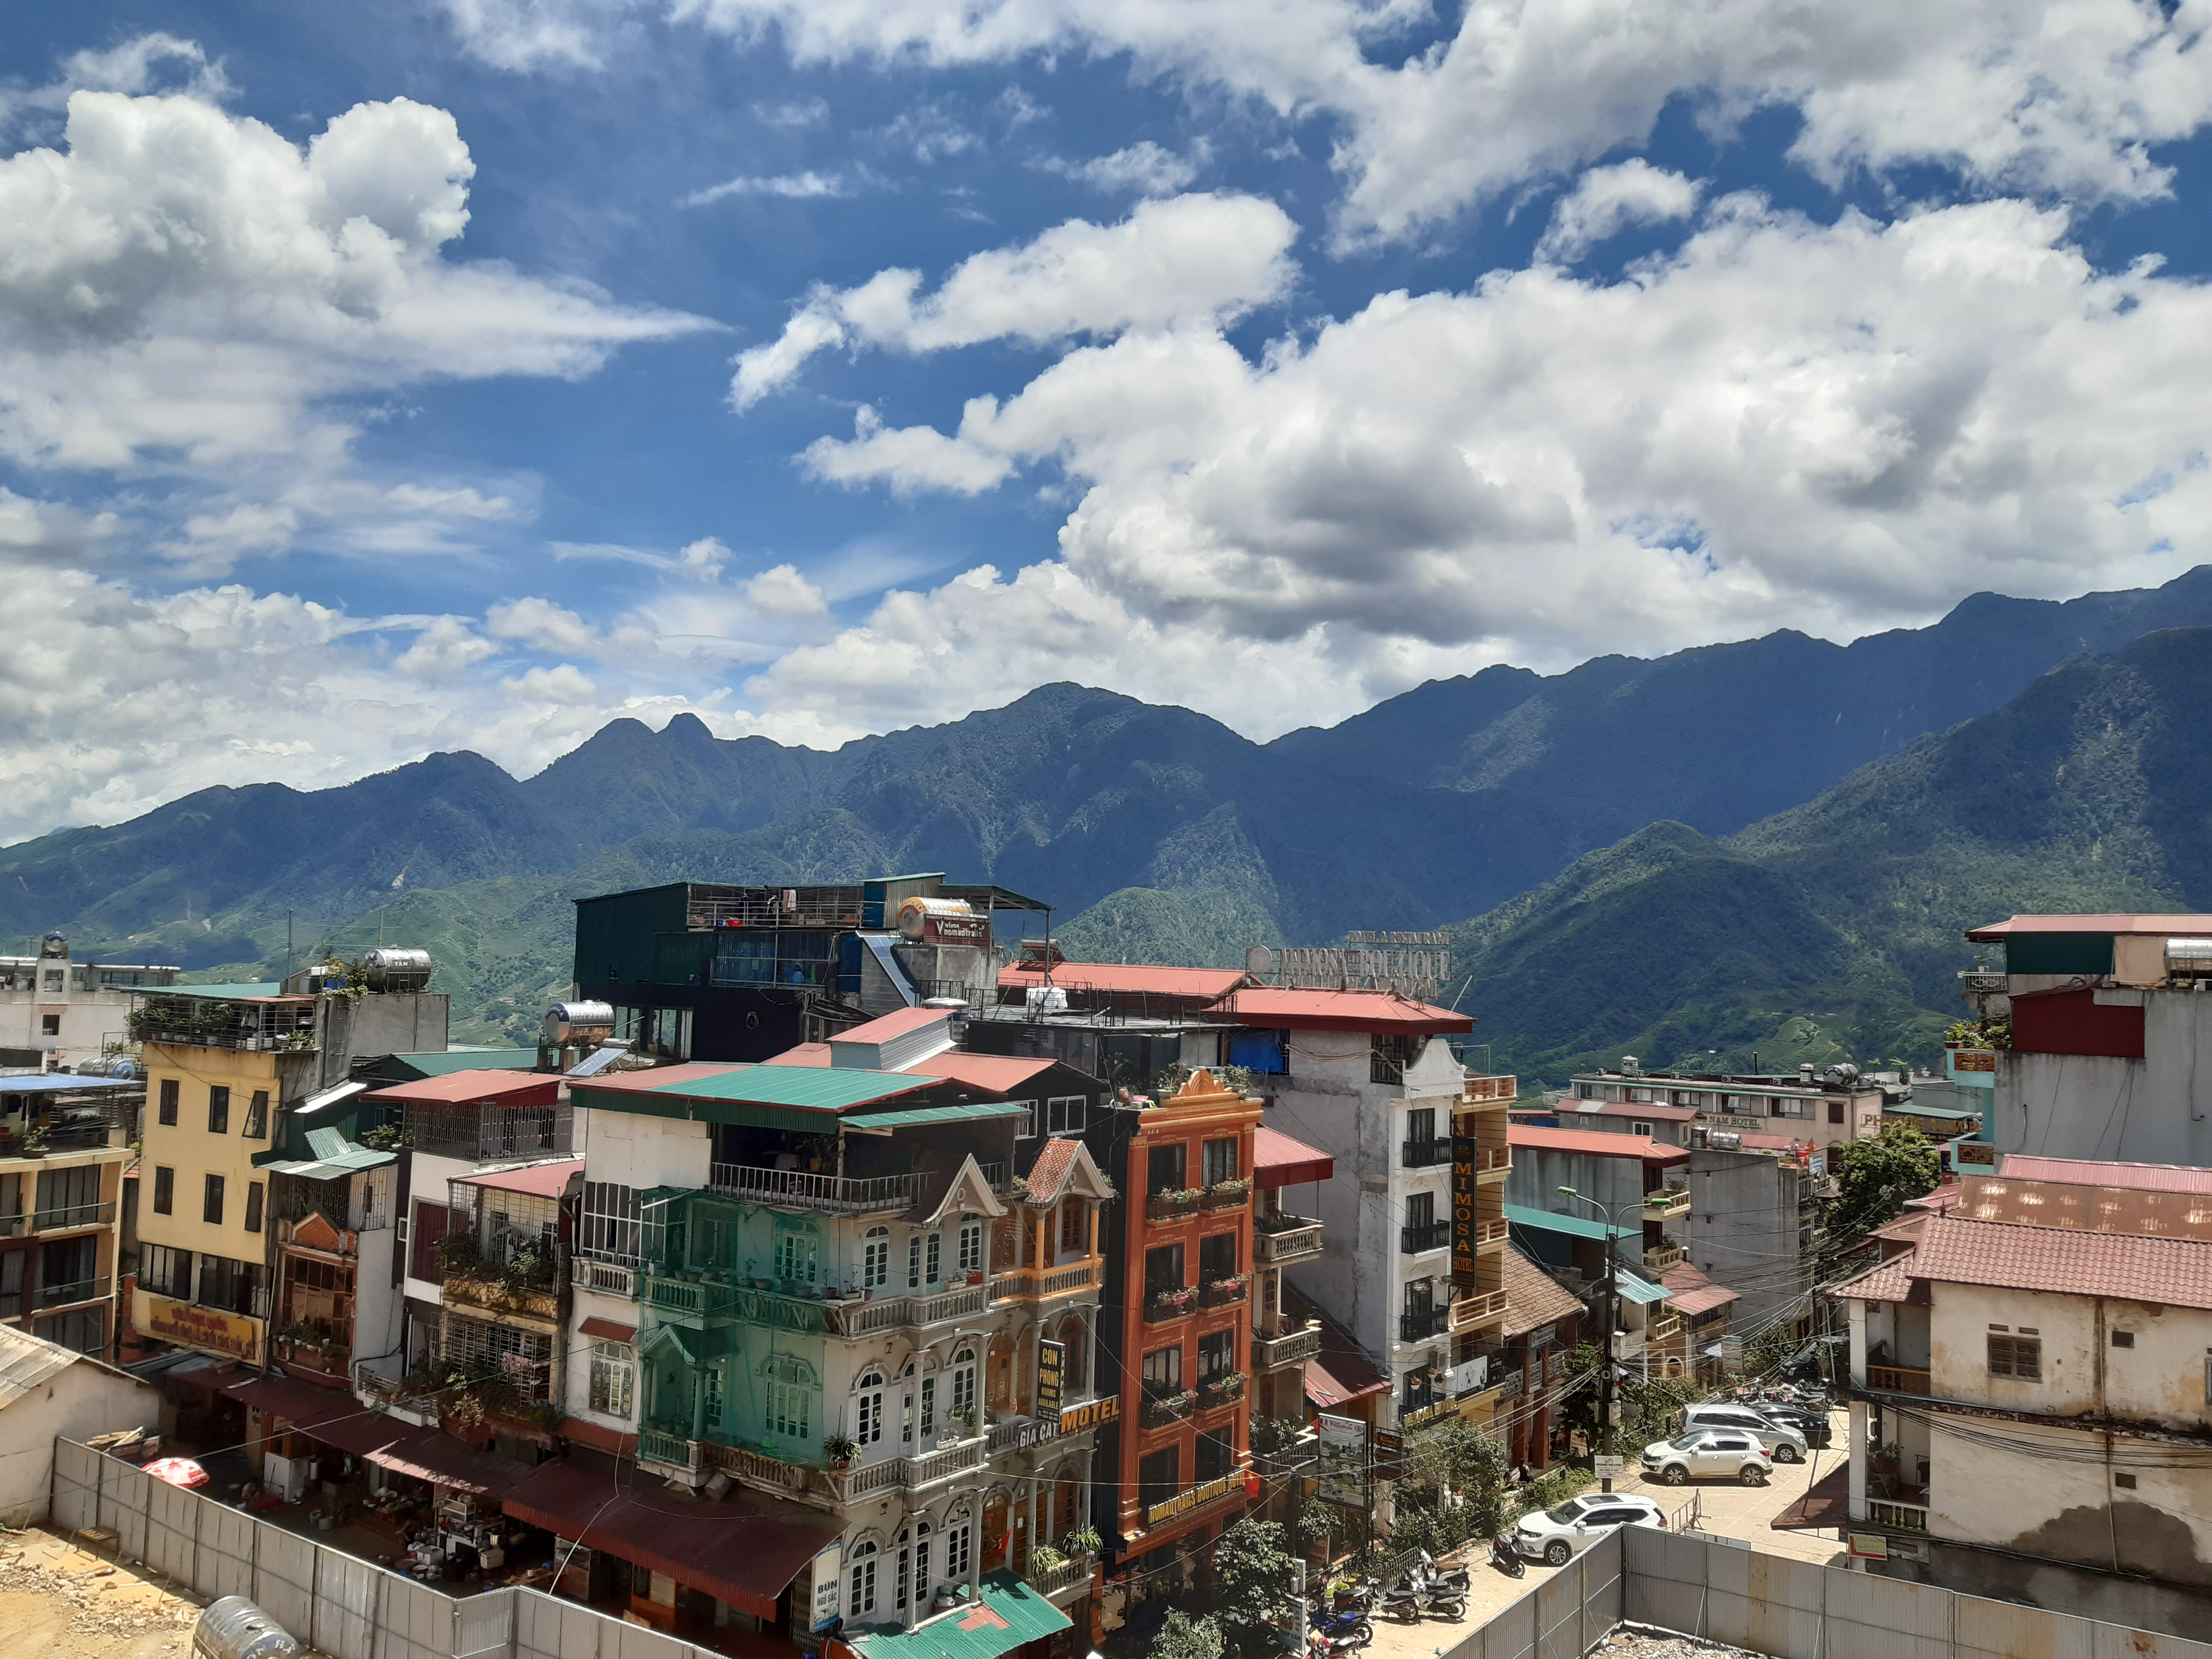 Free download high resolution image - free image free photo free stock image public domain picture -SaPa is a town in the Hoang Lien Son Mountain in Vietnam